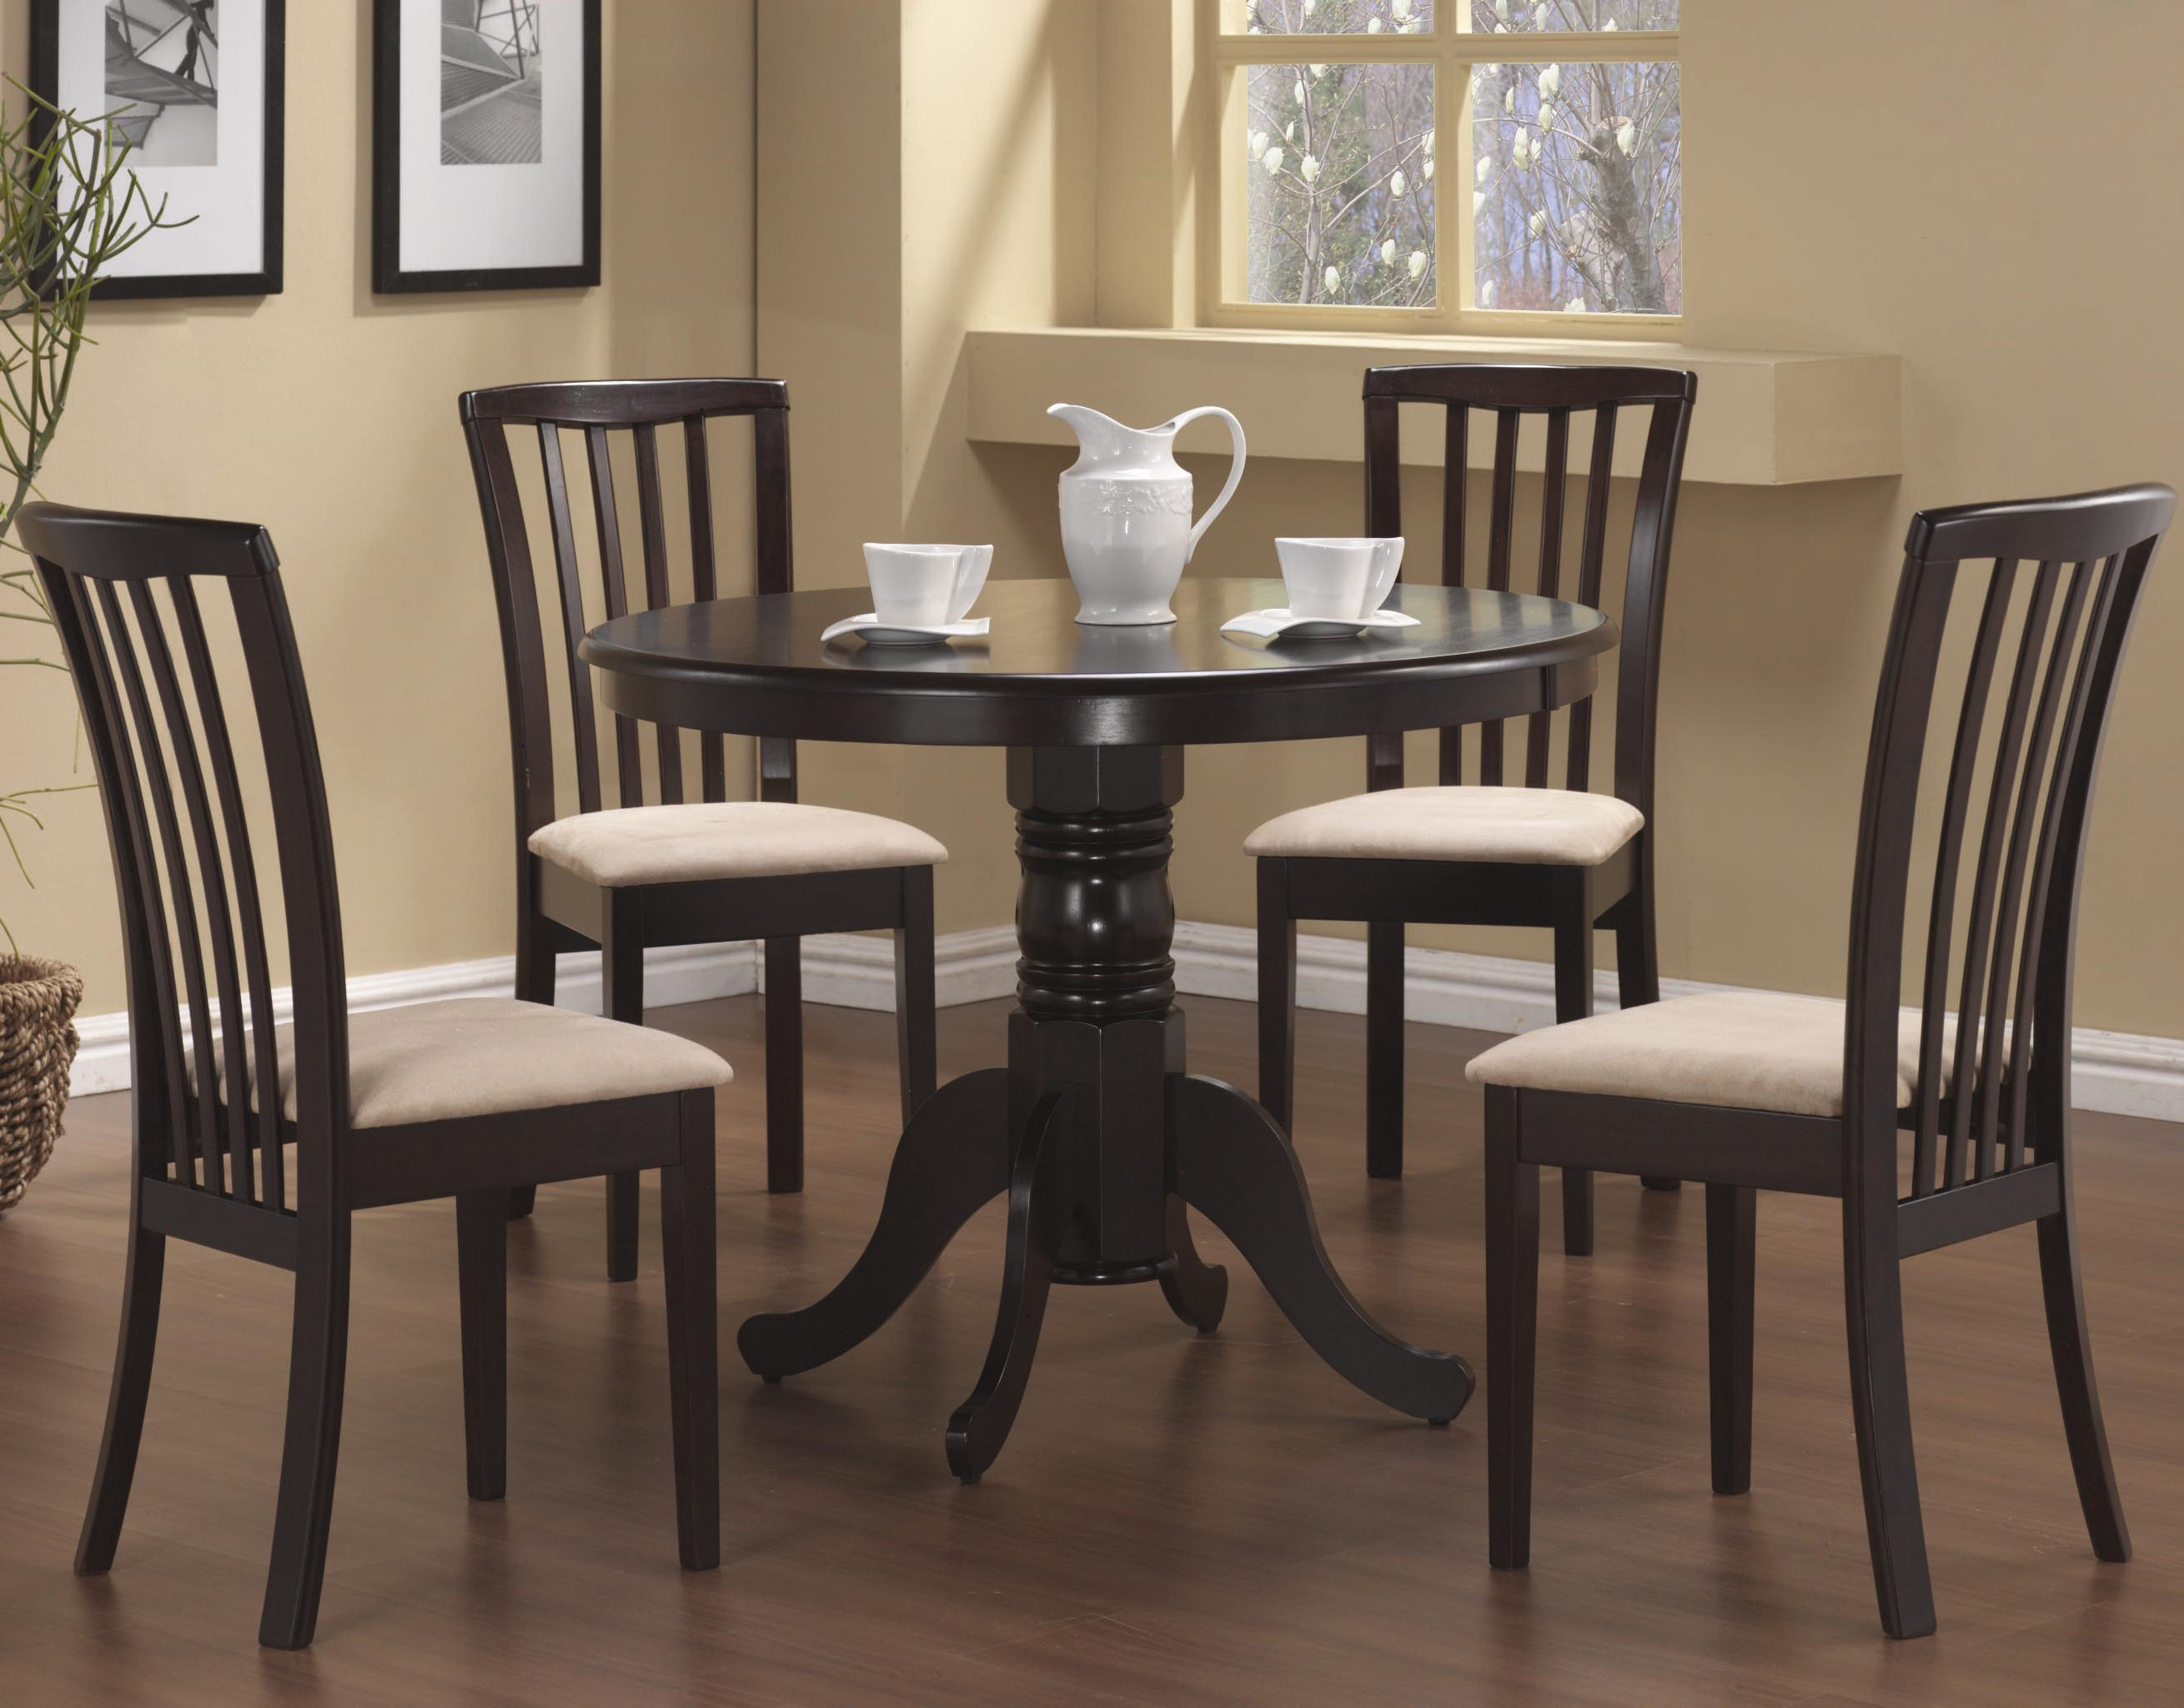 Dining Room Chair Sets Brannan 5 Piece Dining Set By Coaster At A1 Furniture Mattress